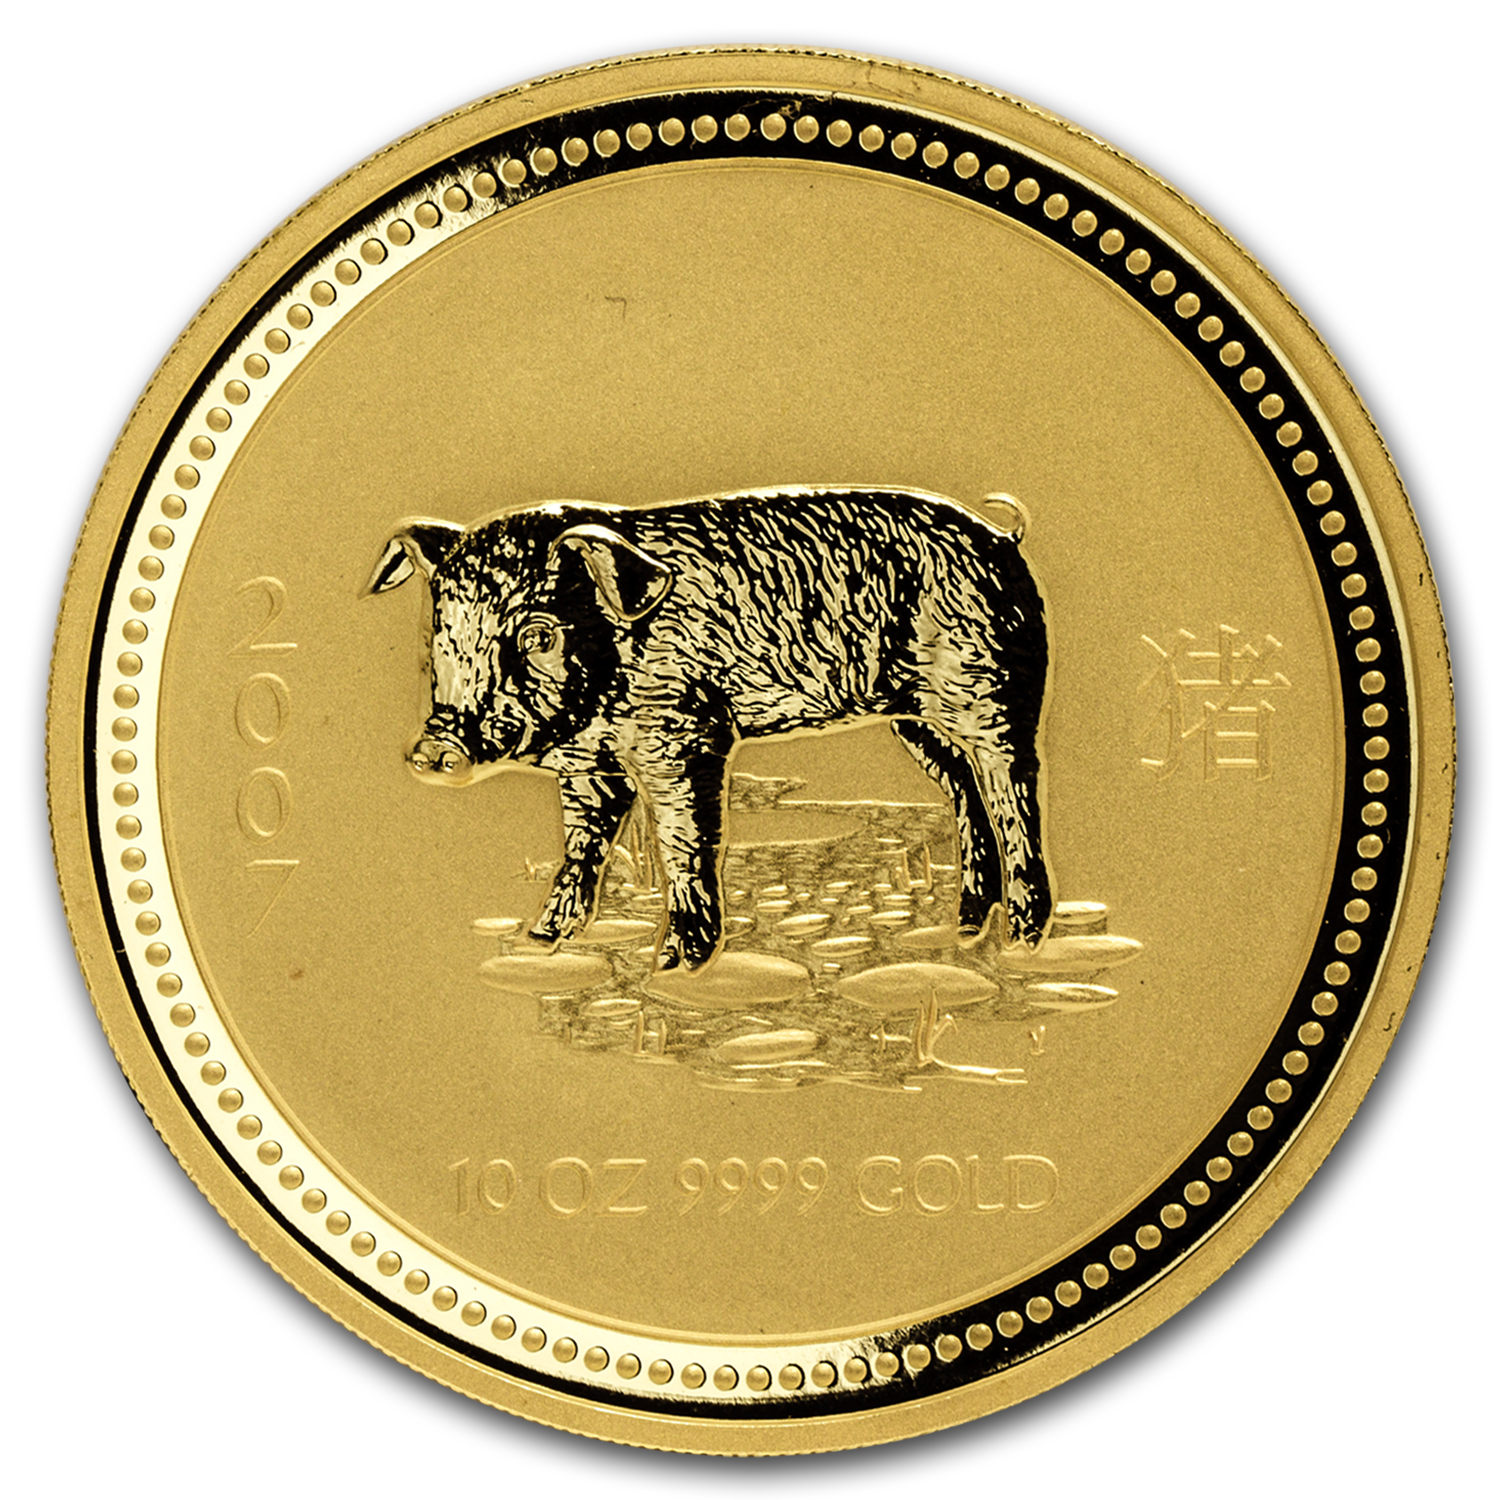 2007 10 oz Gold Year of the Pig Lunar Coin (Series I)